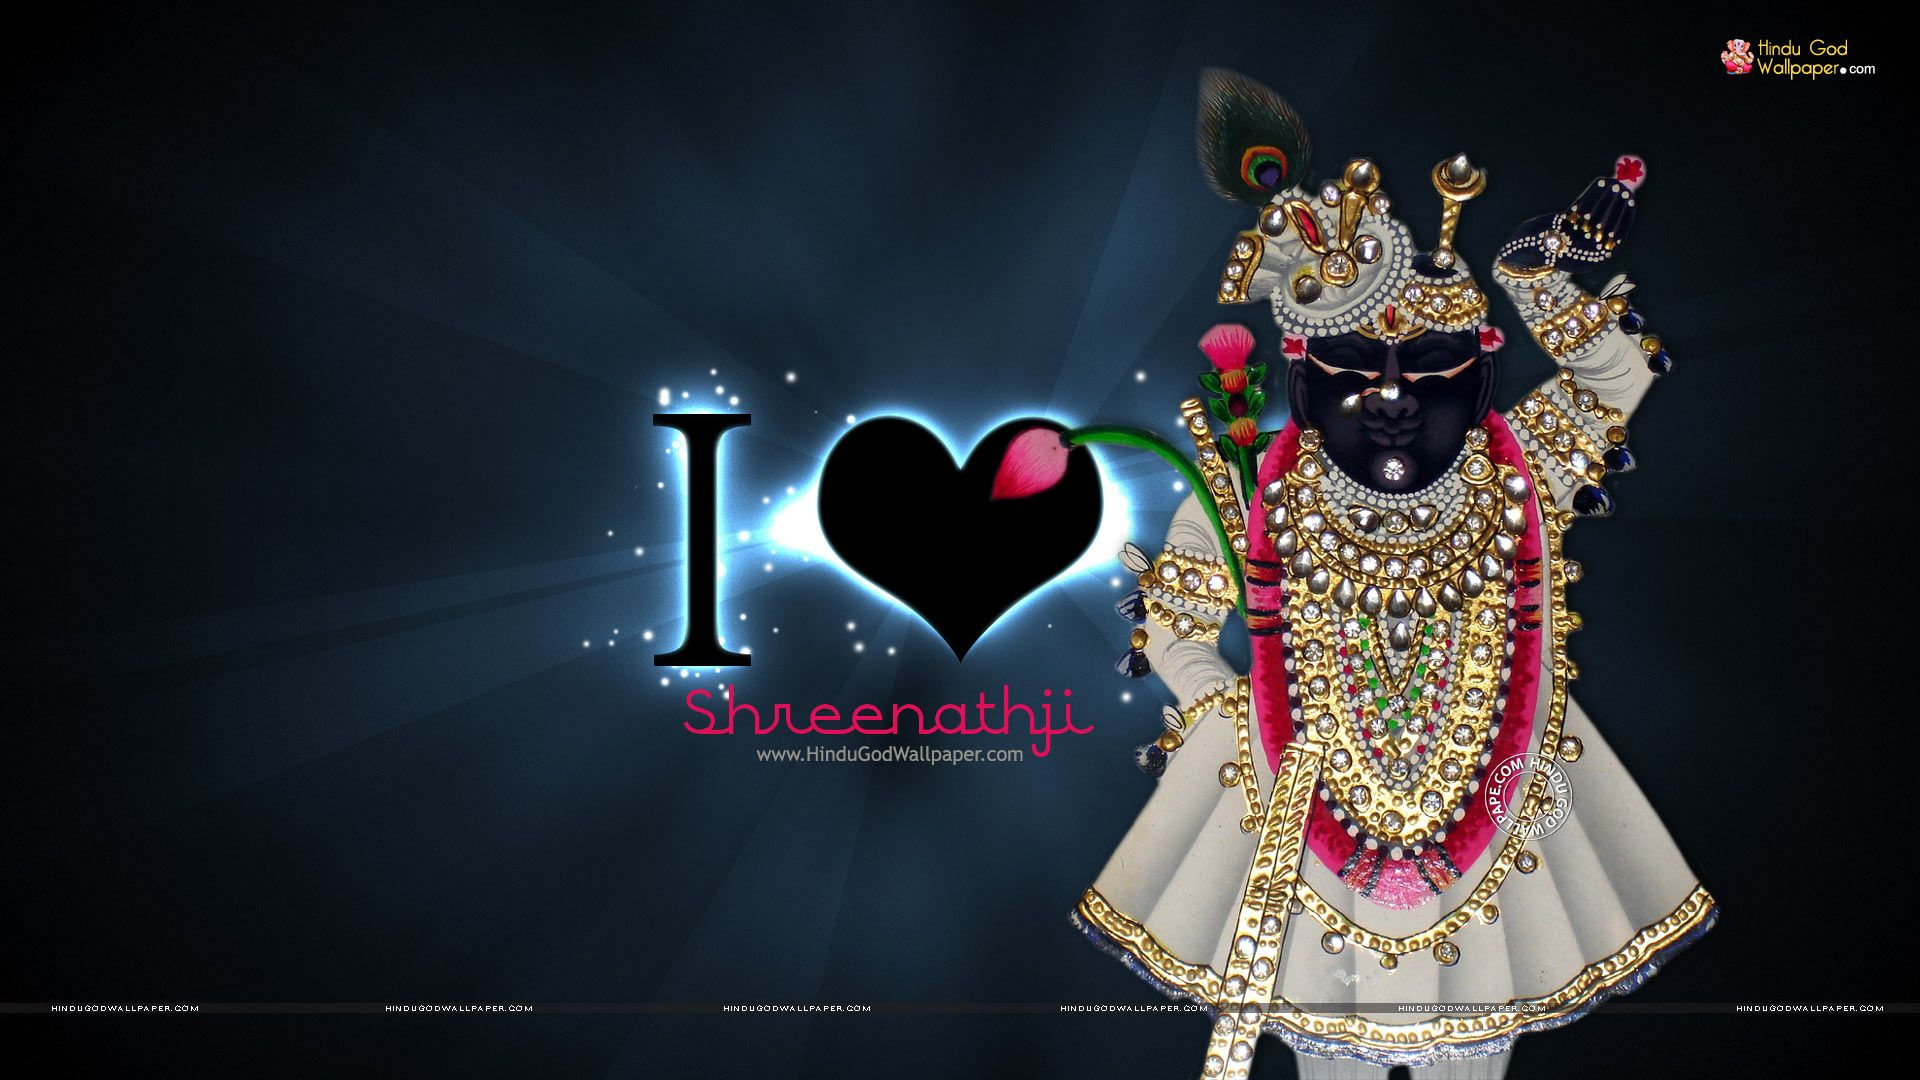 shreenathji hd wallpaper 1080p full size free download | lord